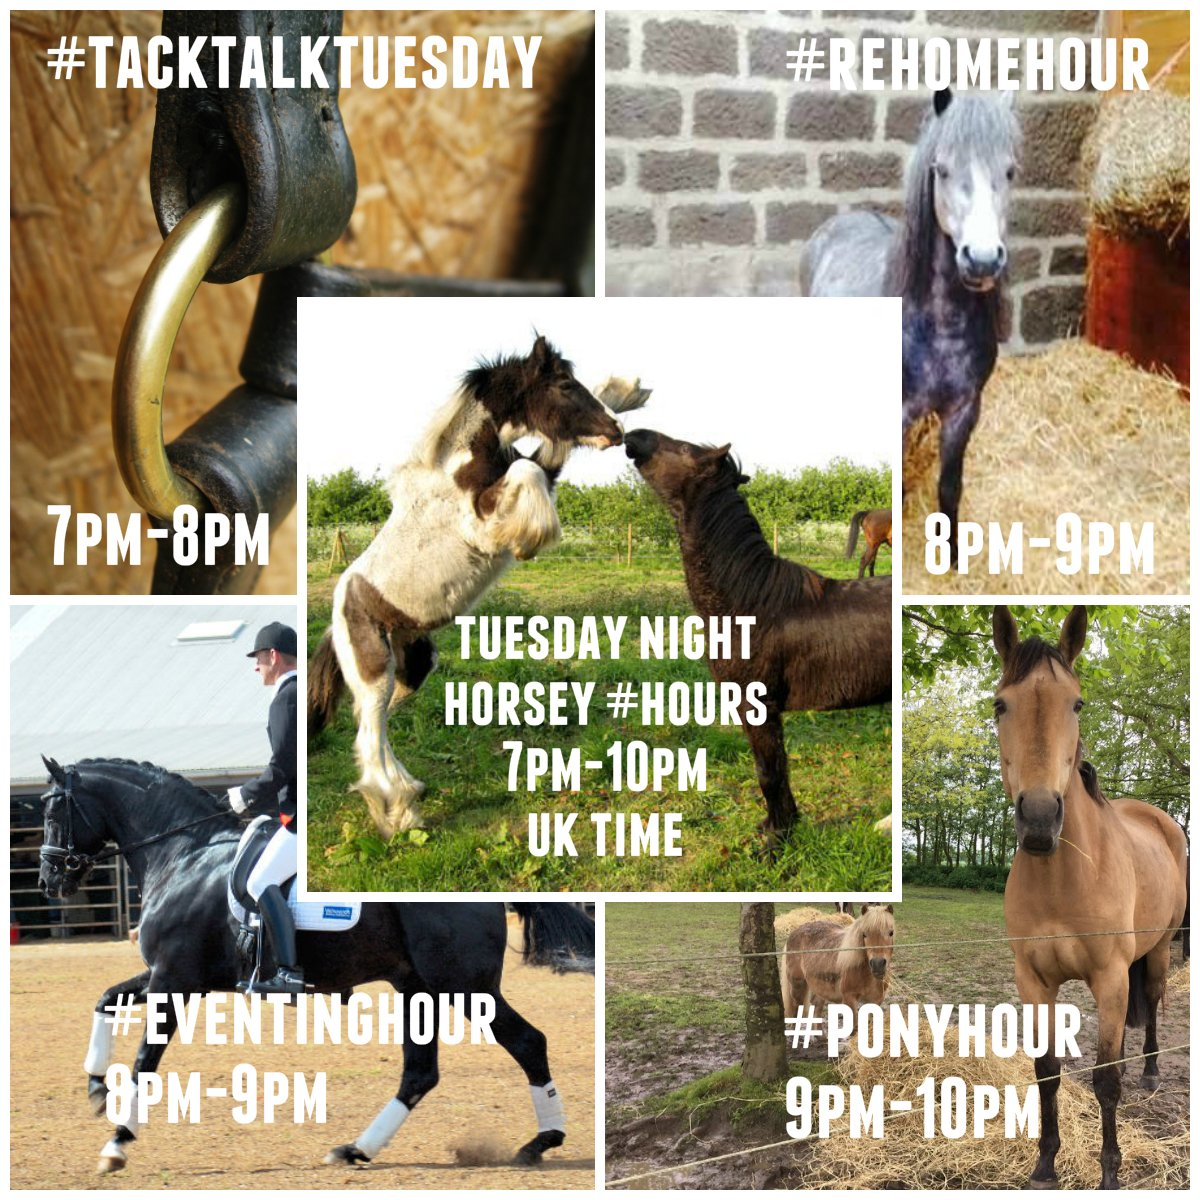 Tuesday&#39;s horsey chat hours to talk all things #equine &amp; #equestrian  7-8 #tacktalkTuesday 8-9 #eventinghour 8-9 #rehomehour 9-10 #ponyhour<br>http://pic.twitter.com/AhpJWTANXS